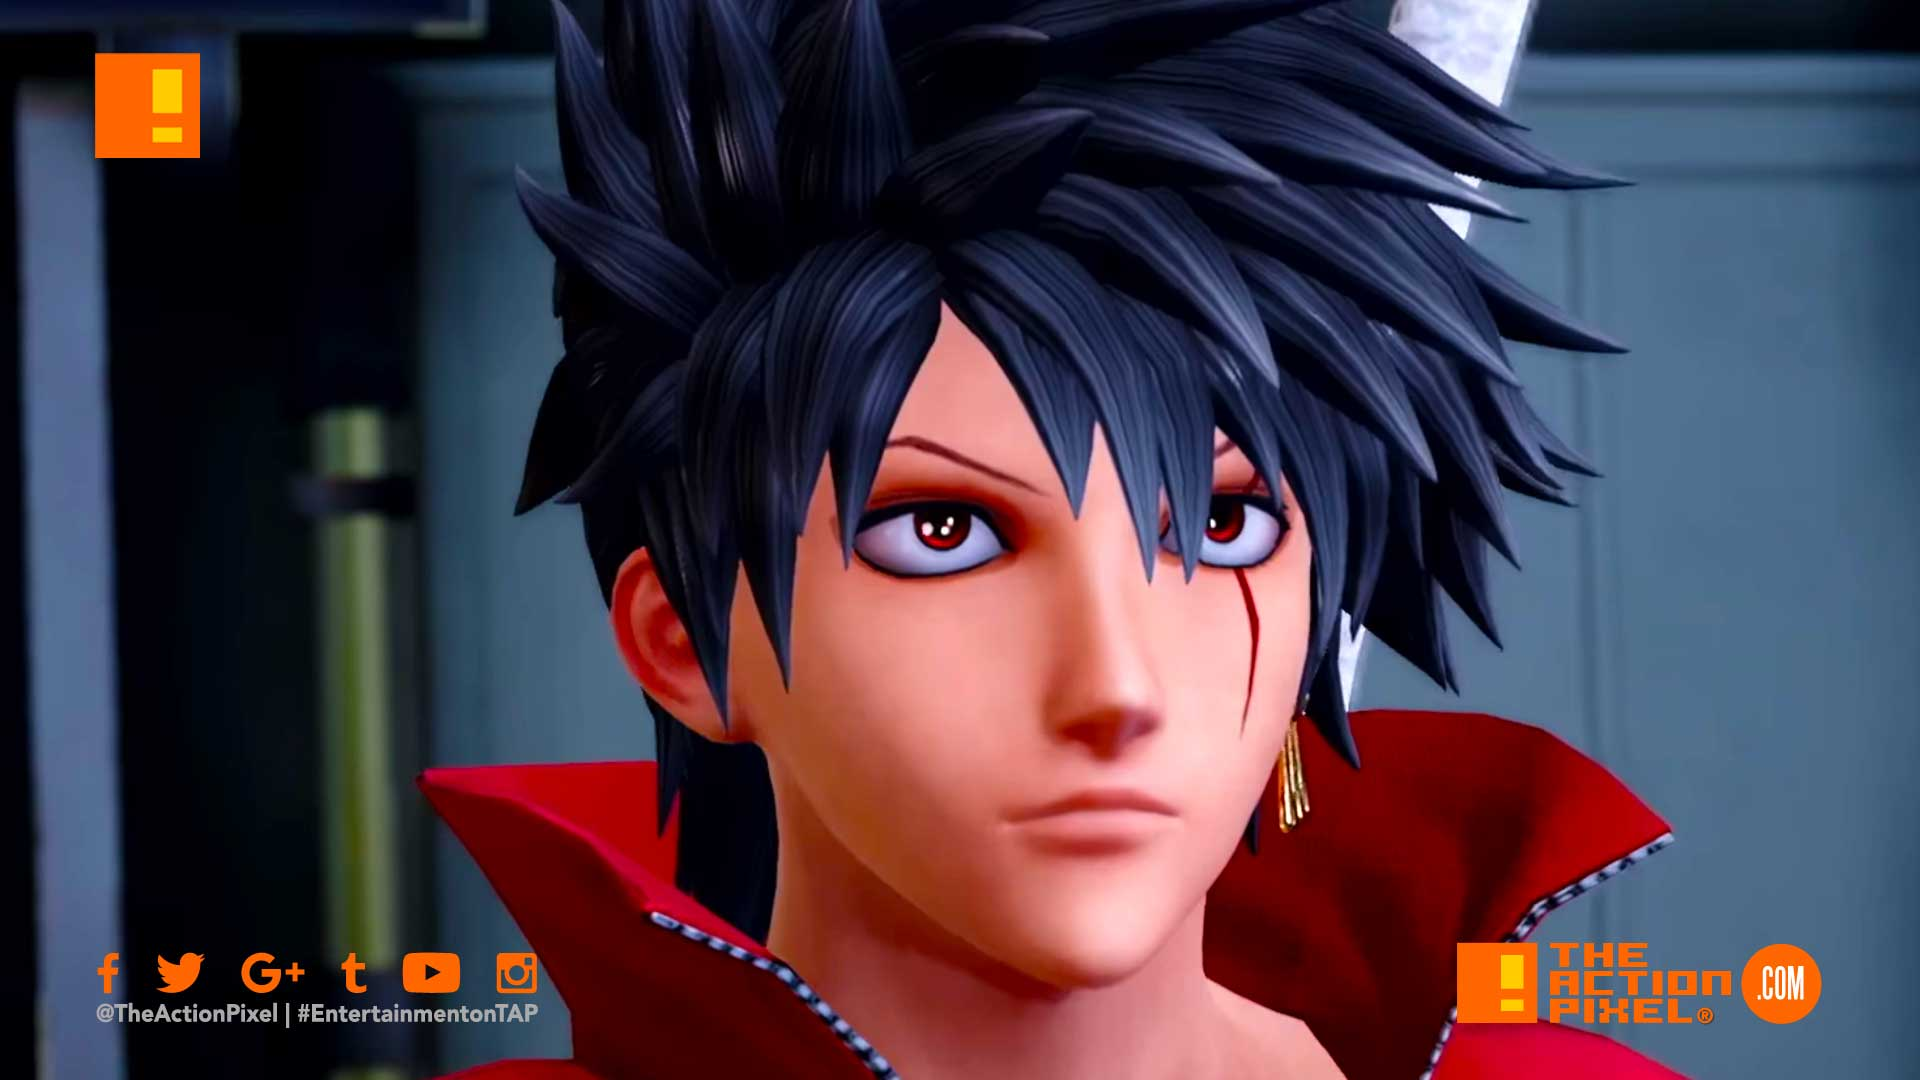 jump force, trailer, launch trailer, the action pixel, entertainment on tap,dbz, goku, death note, kenshi,naruto, anime, manga, bandai namco